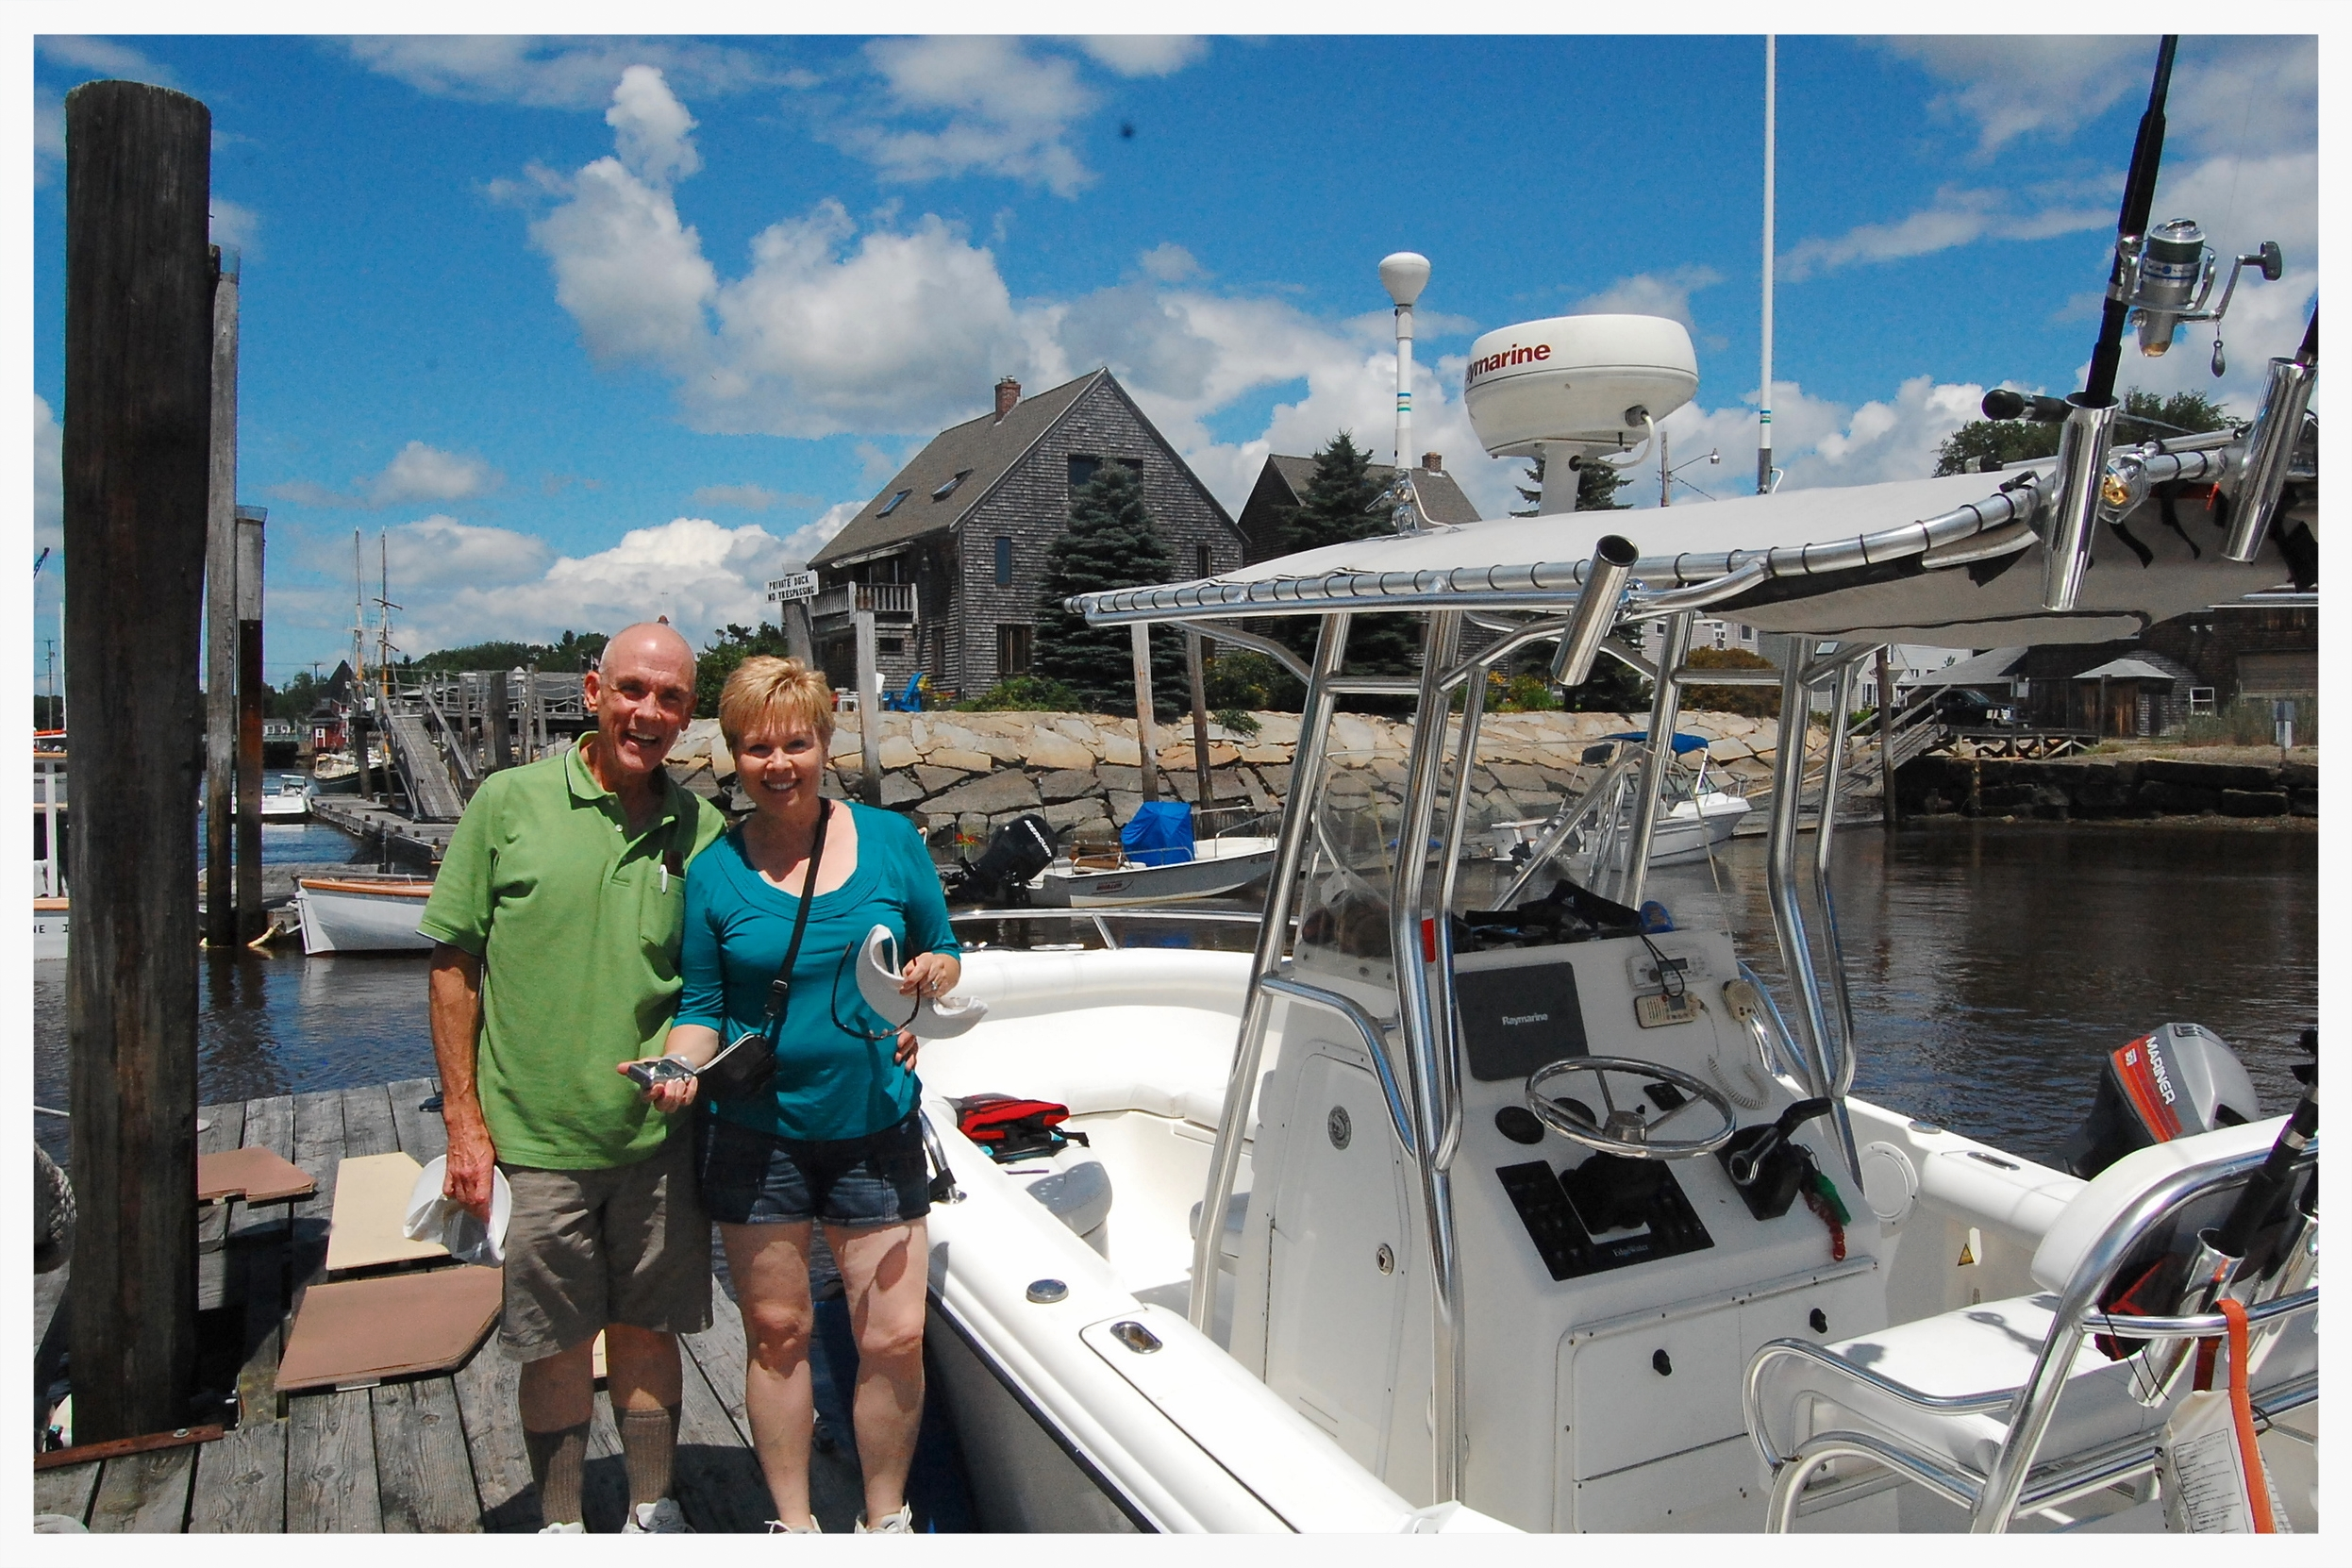 Copy of Scenic Private Cruises - Kennebunkport, Maine